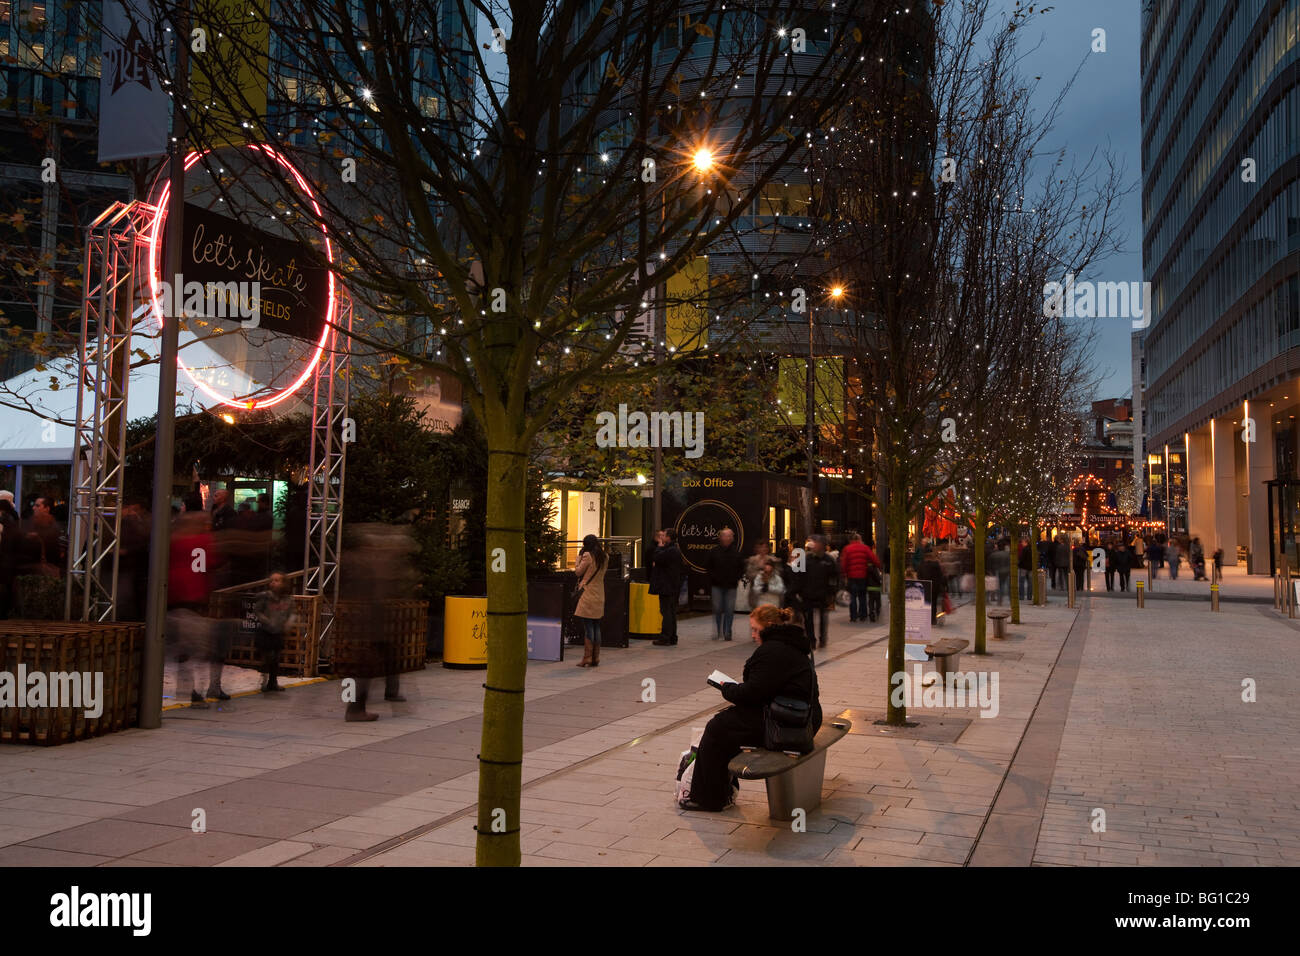 UK, England, Manchester, Spinningfields at night, visitors outside Christmas ice skating rink - Stock Image